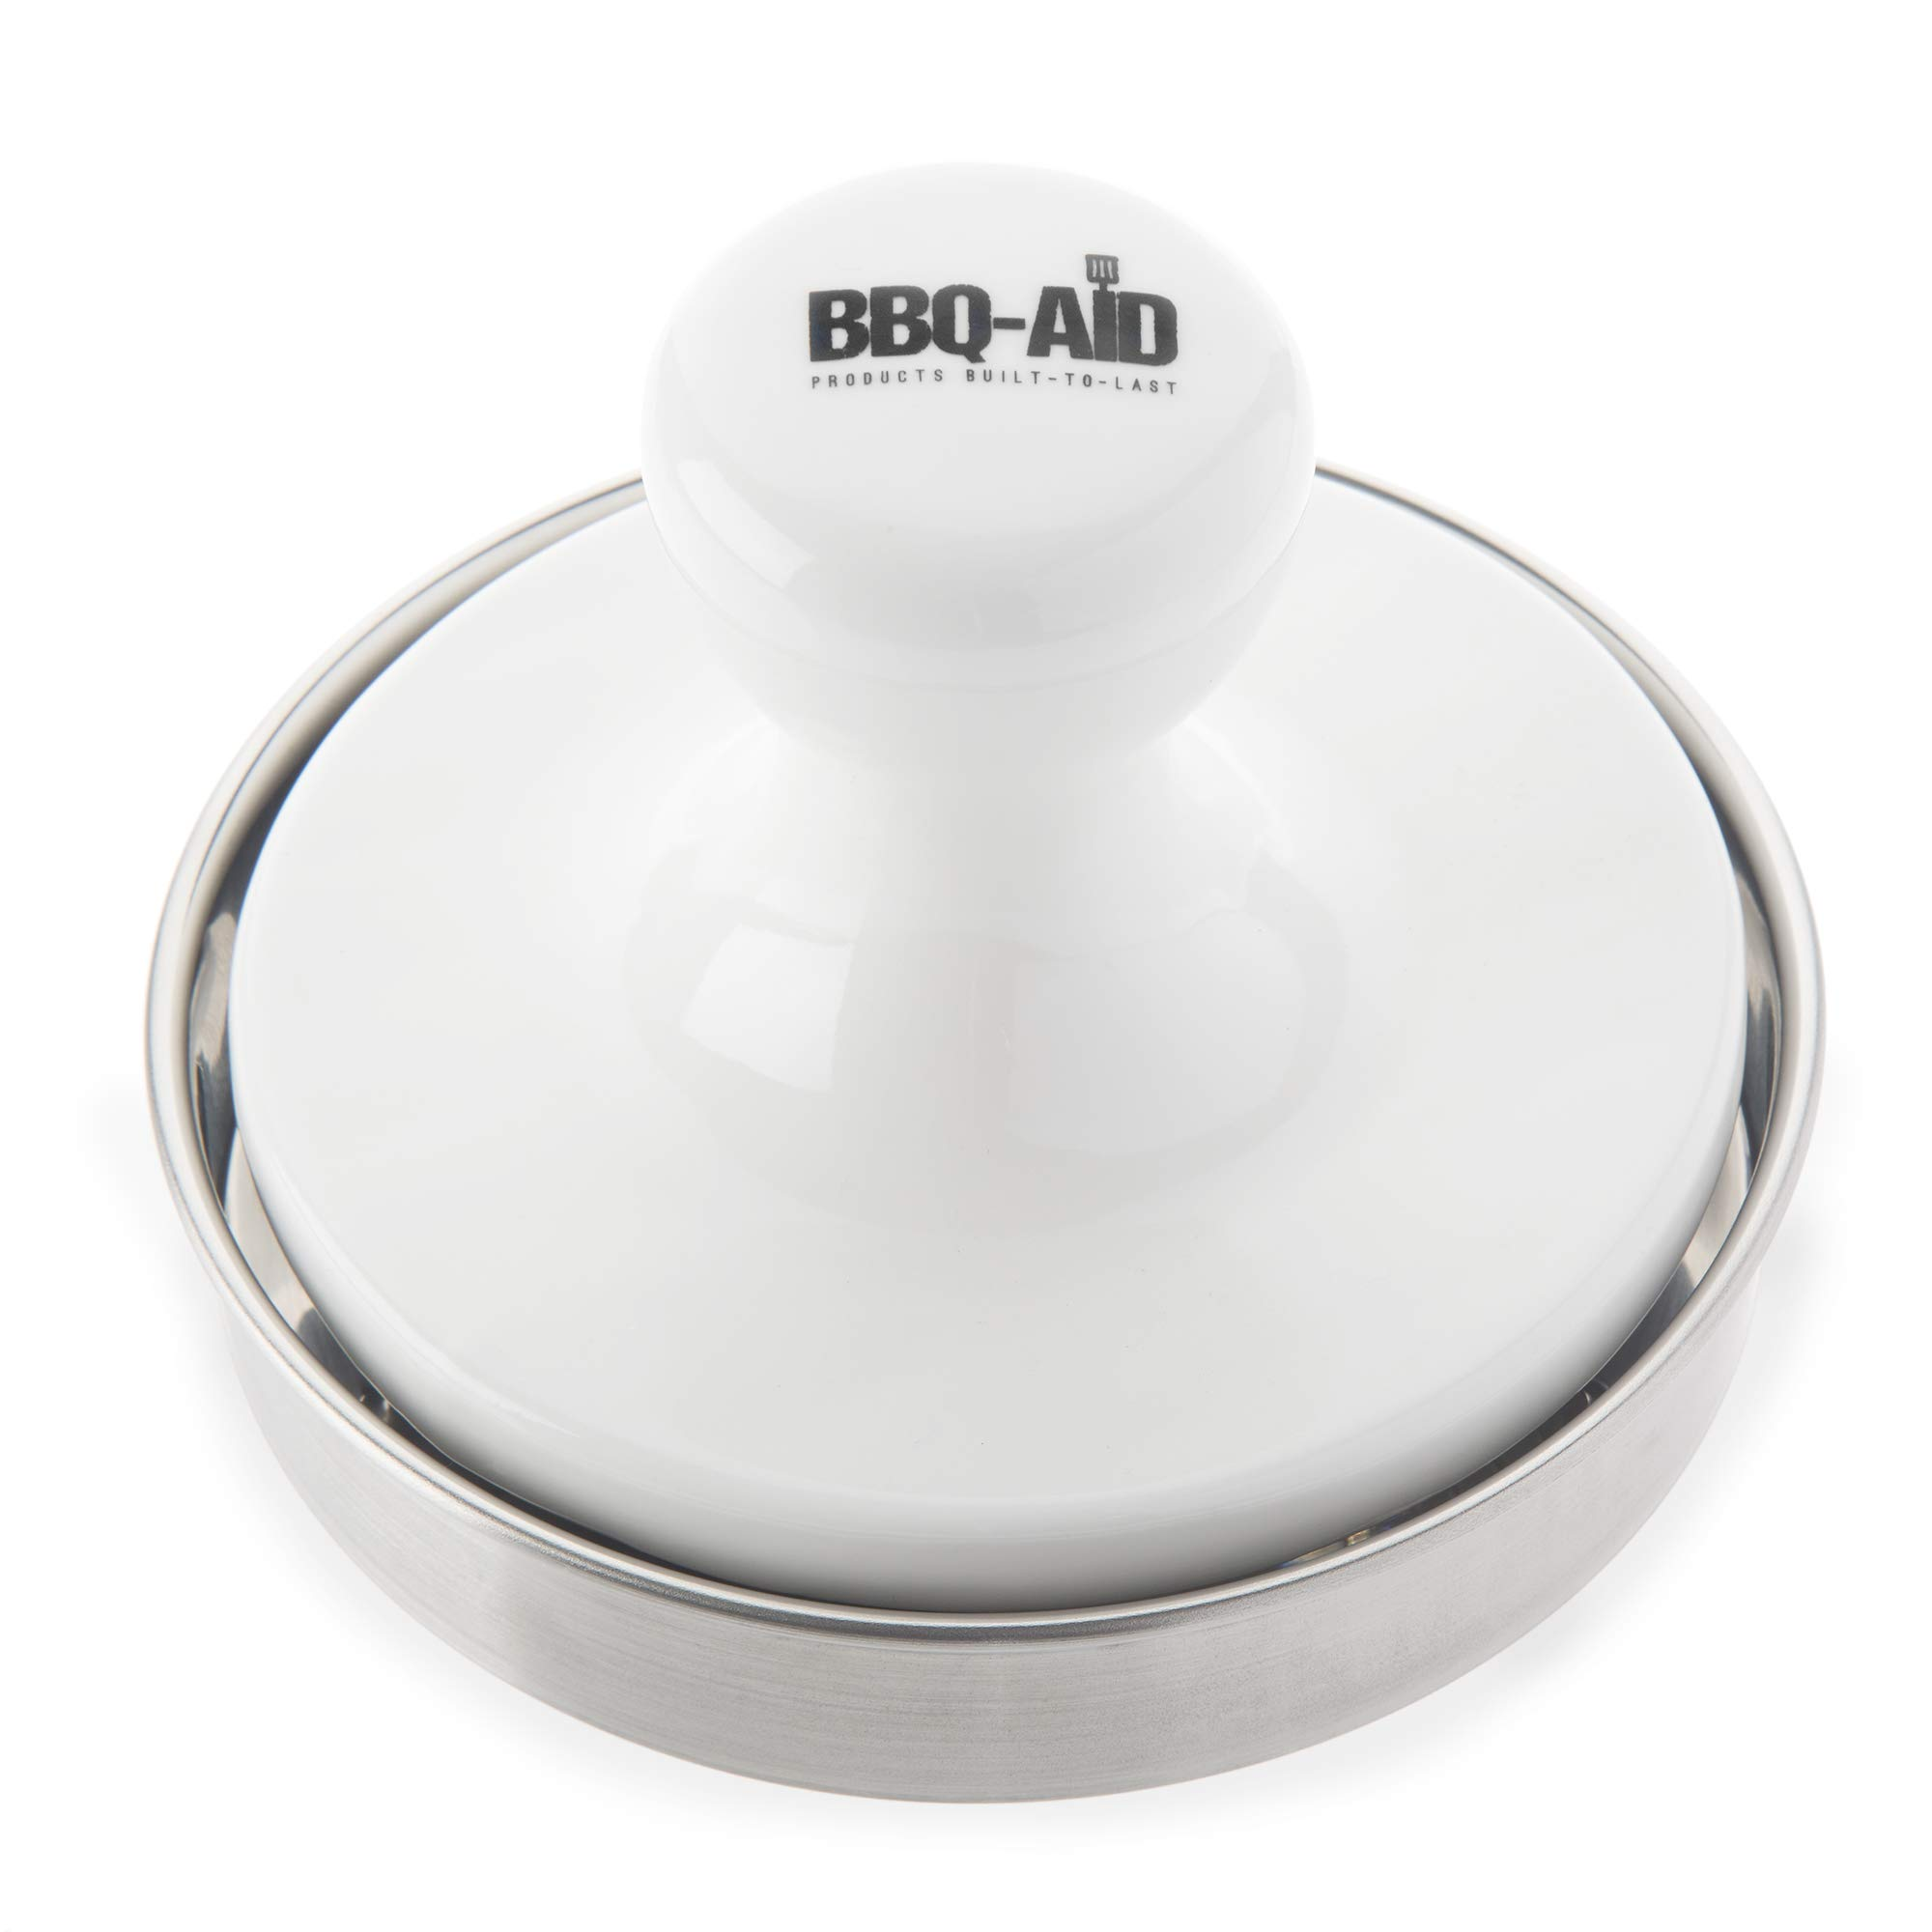 BBQ-Aid Burger Press - Evenly Cooked, Tasty Burgers - Made with a Porcelain Press and Stainless Steel Bottom - This Hamburger Patty Maker for Grilling is a Notch Above by BBQ-Aid